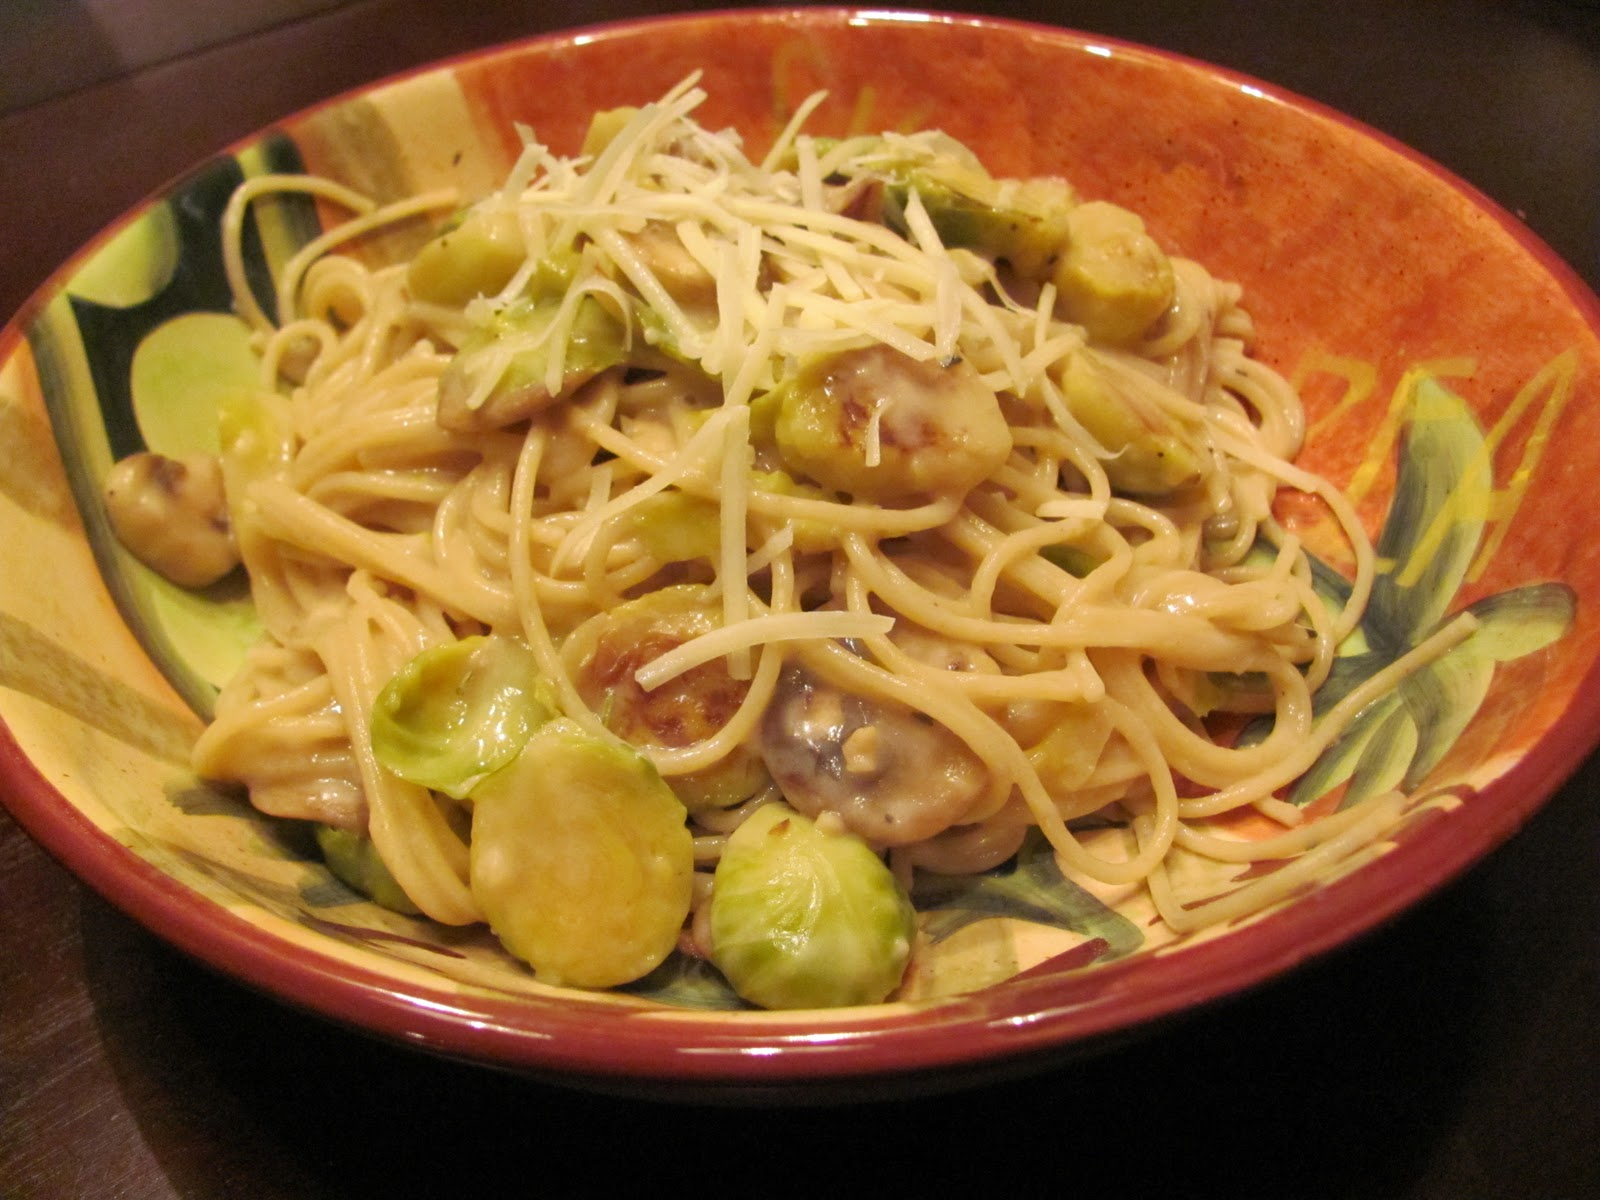 The Mansfields: Creamy Fettuccine with Mushrooms & Brussel Sprouts